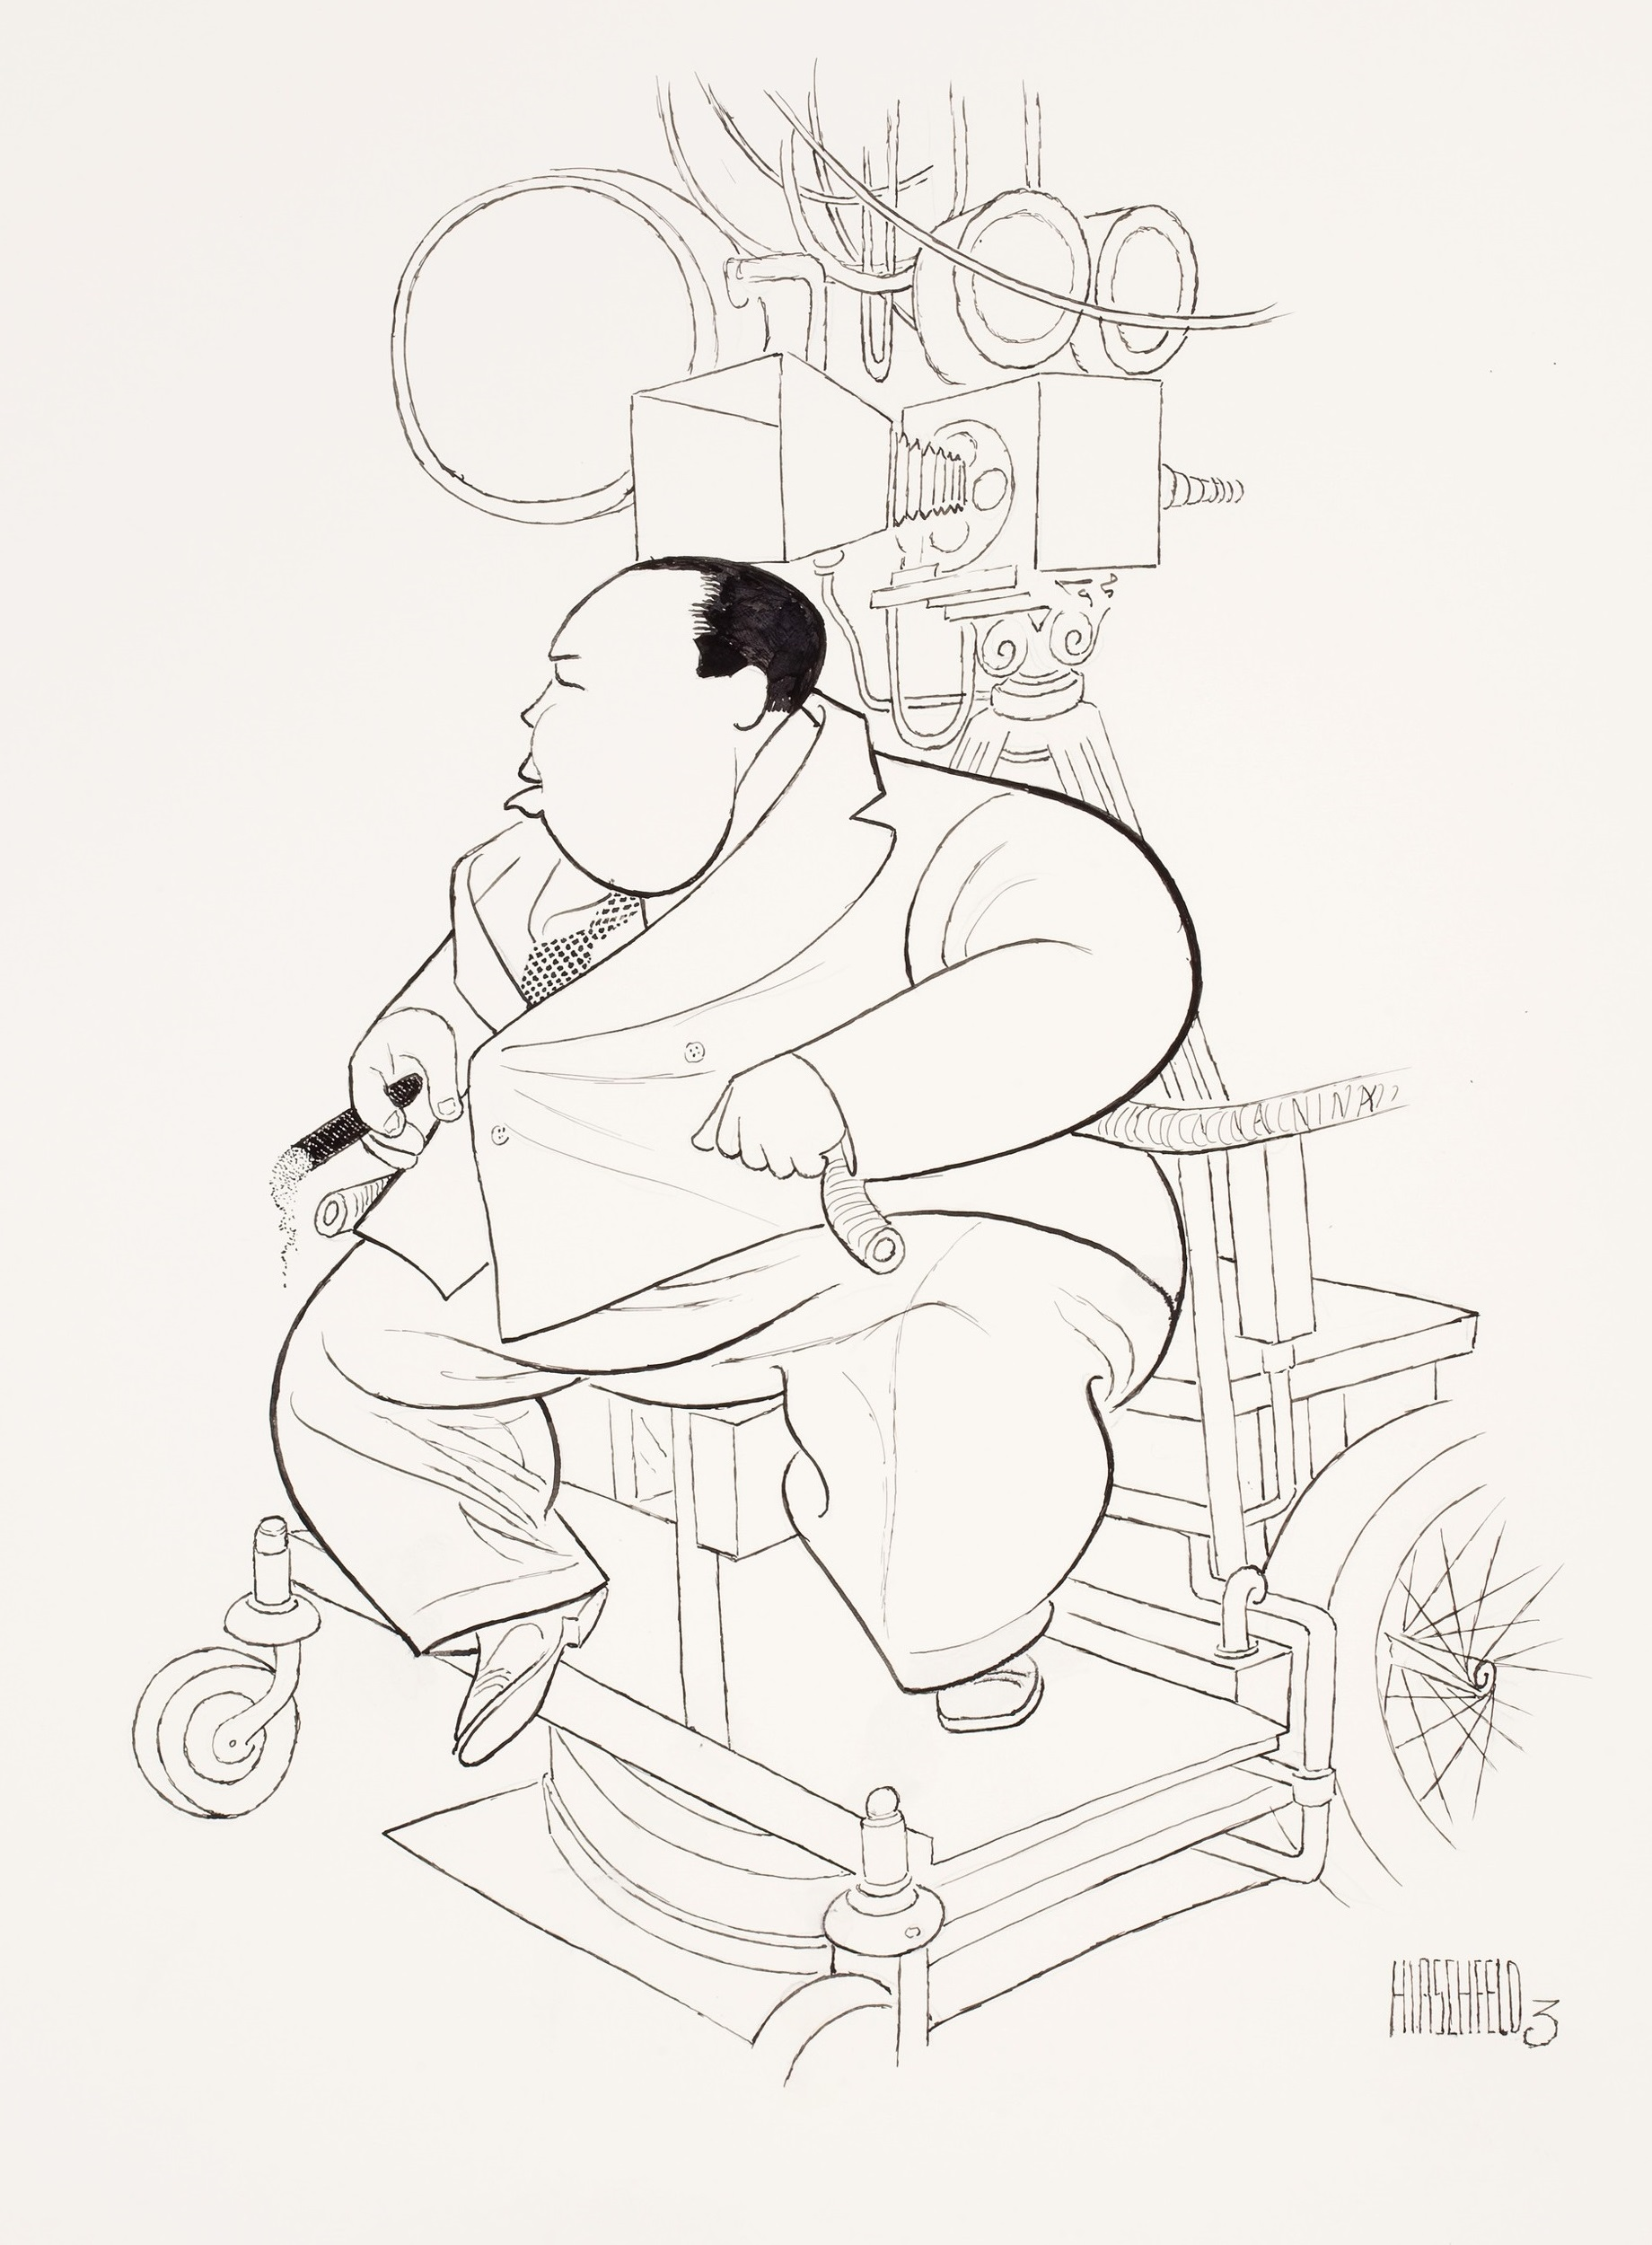 Alfred Hitchcock on the set of Sabotage (1936) caricature by Al Hirschfeld